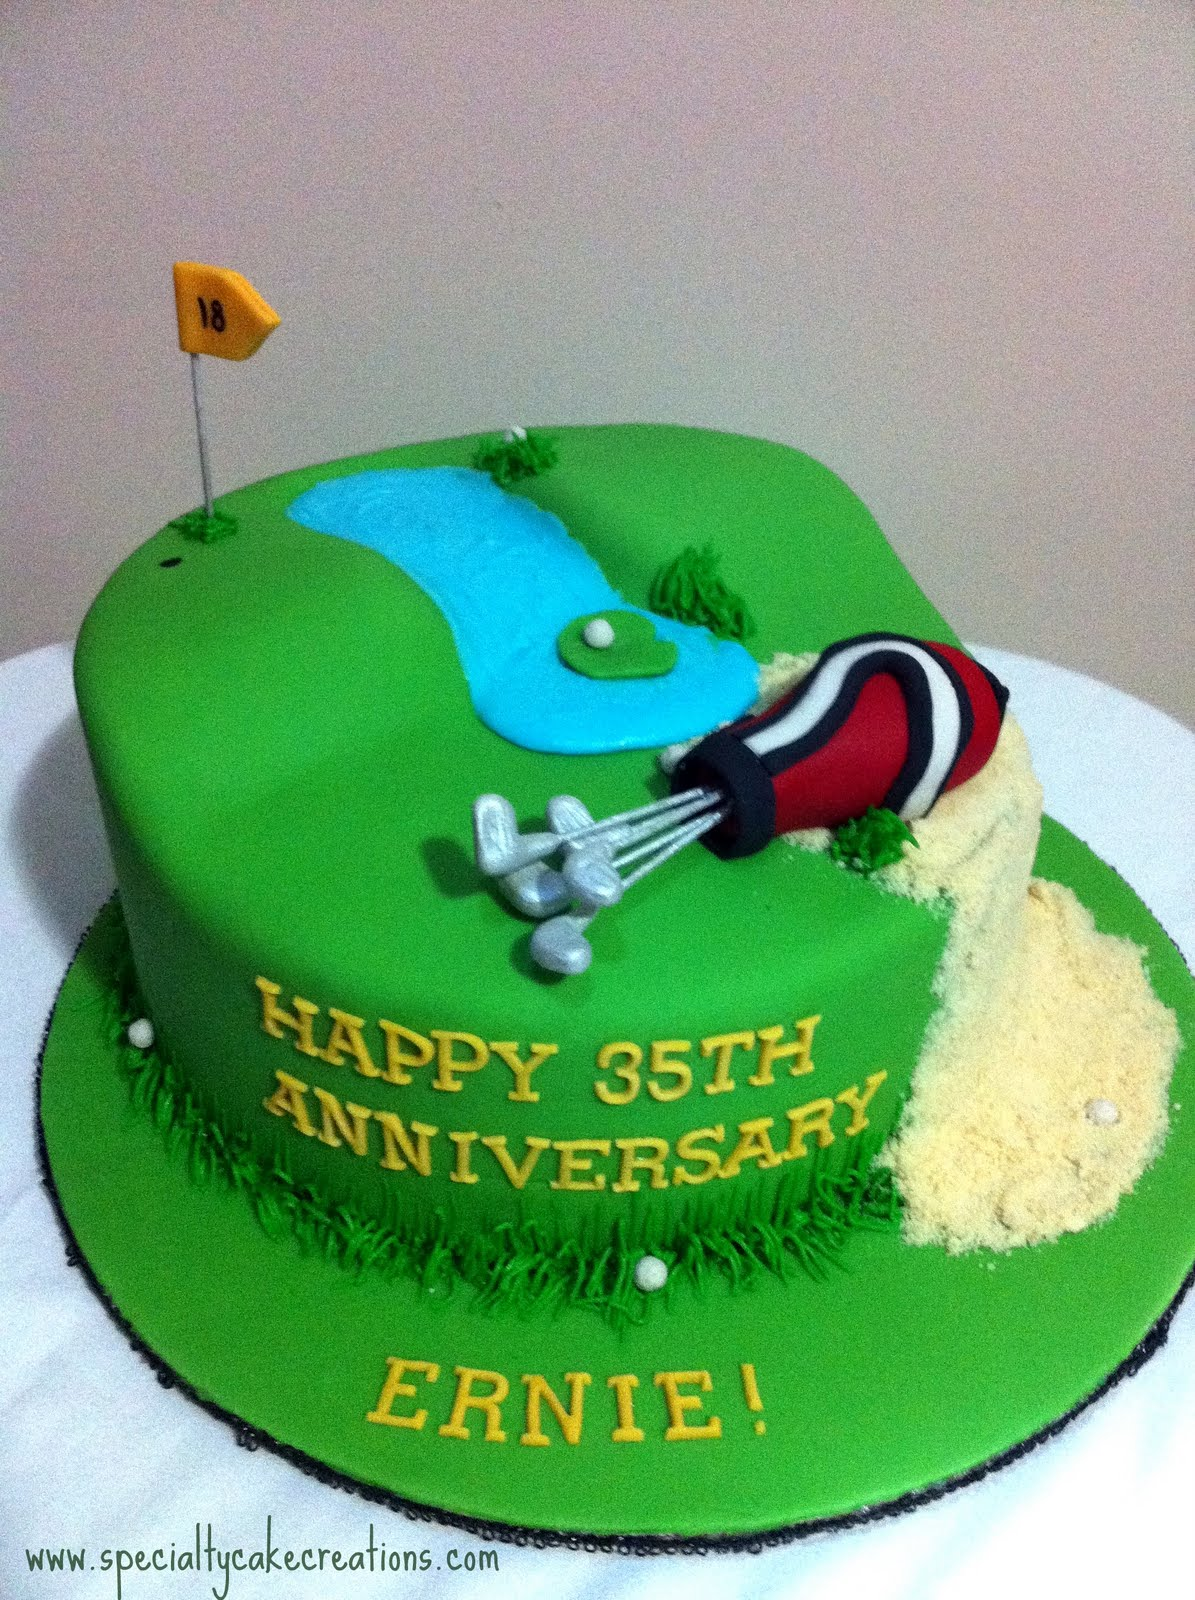 Cake Images Golf : Specialty Cakes: Specialty Golf Course Cake